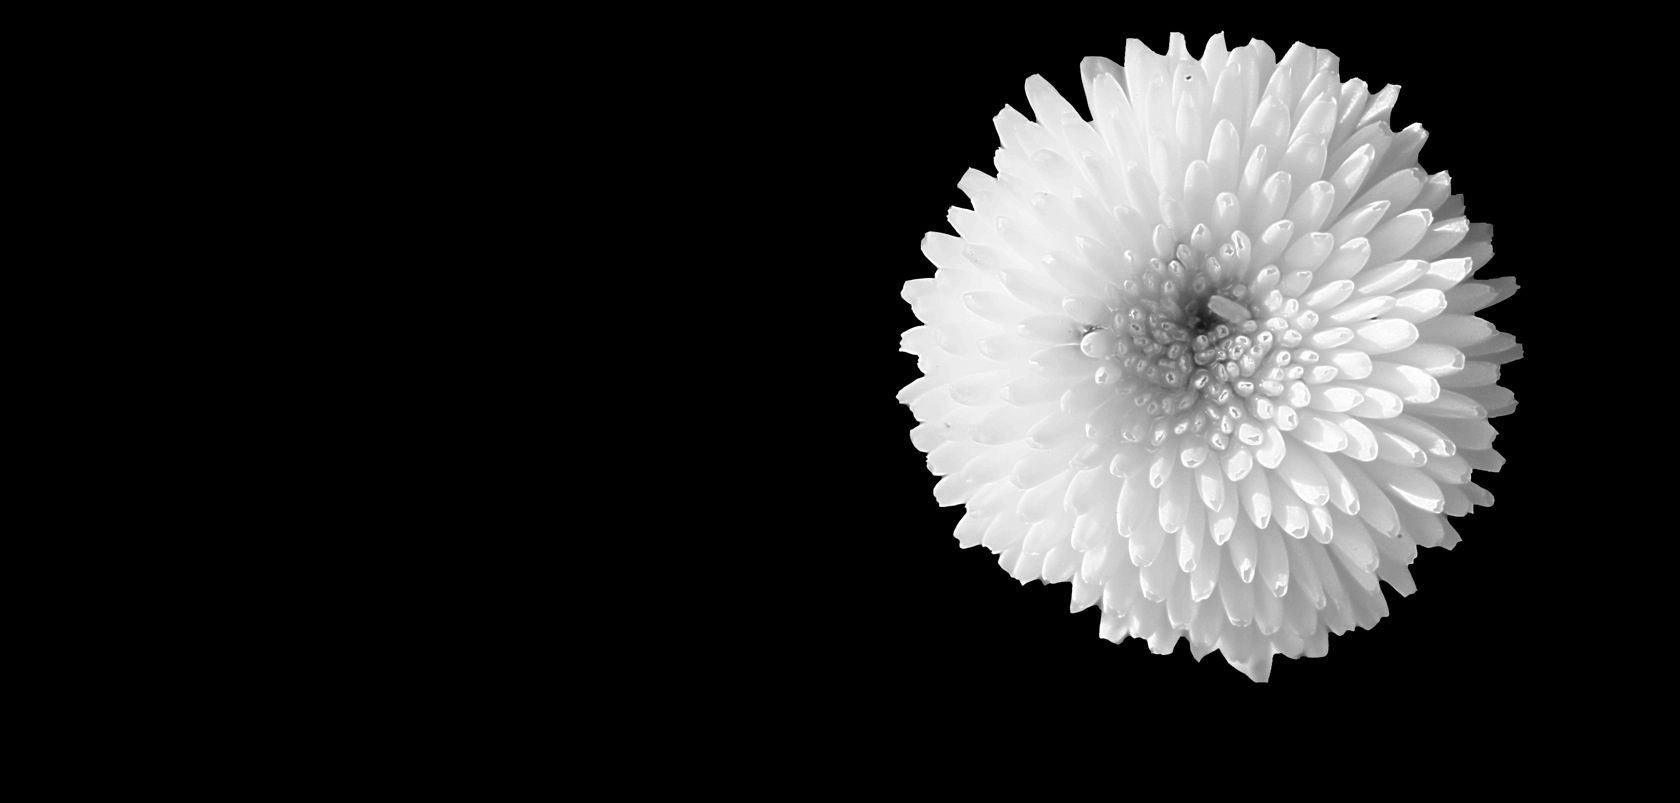 black and white flowers wallpaper 15 hd wallpaper